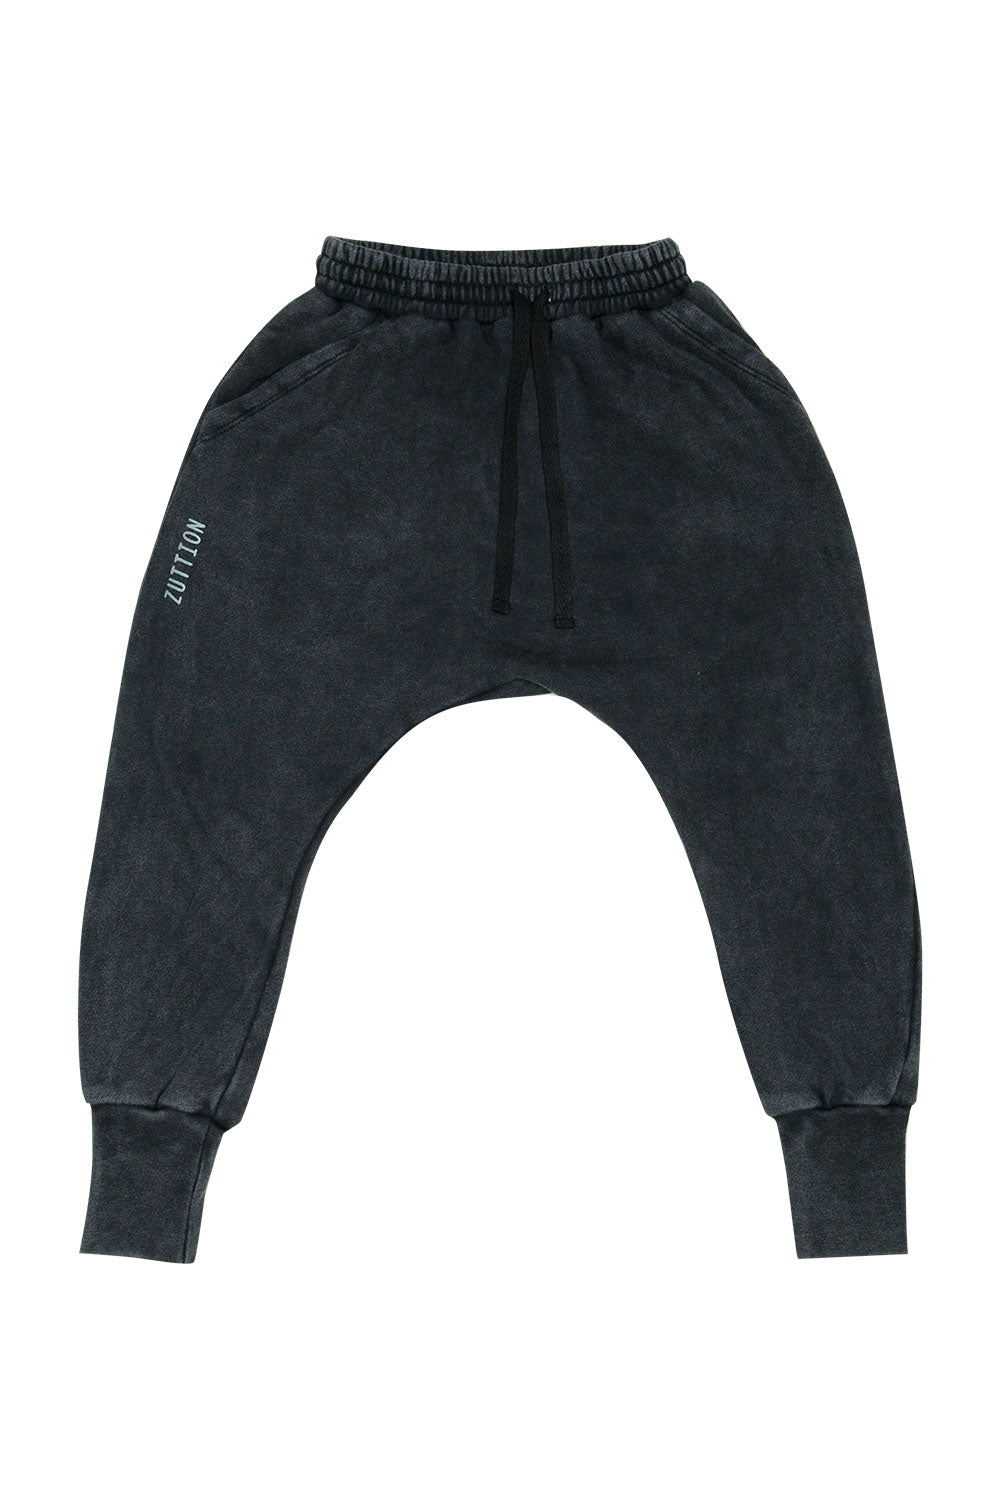 LOW CROTCH TRACKIE PANT CHARCOAL